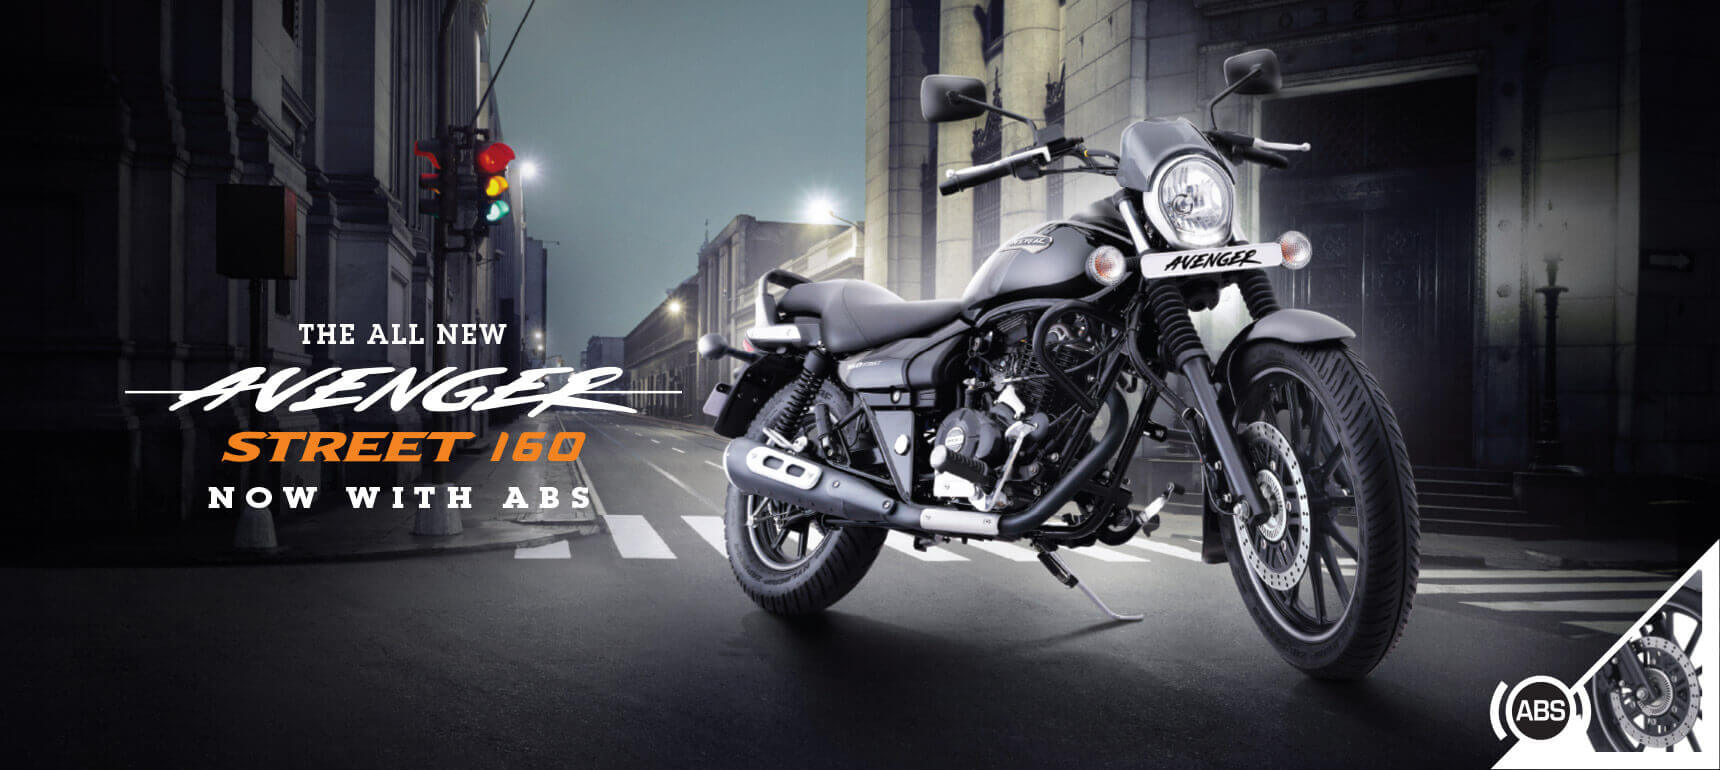 Bajaj-Avenger-160-Street-Now-with-ABS-Product-Banner